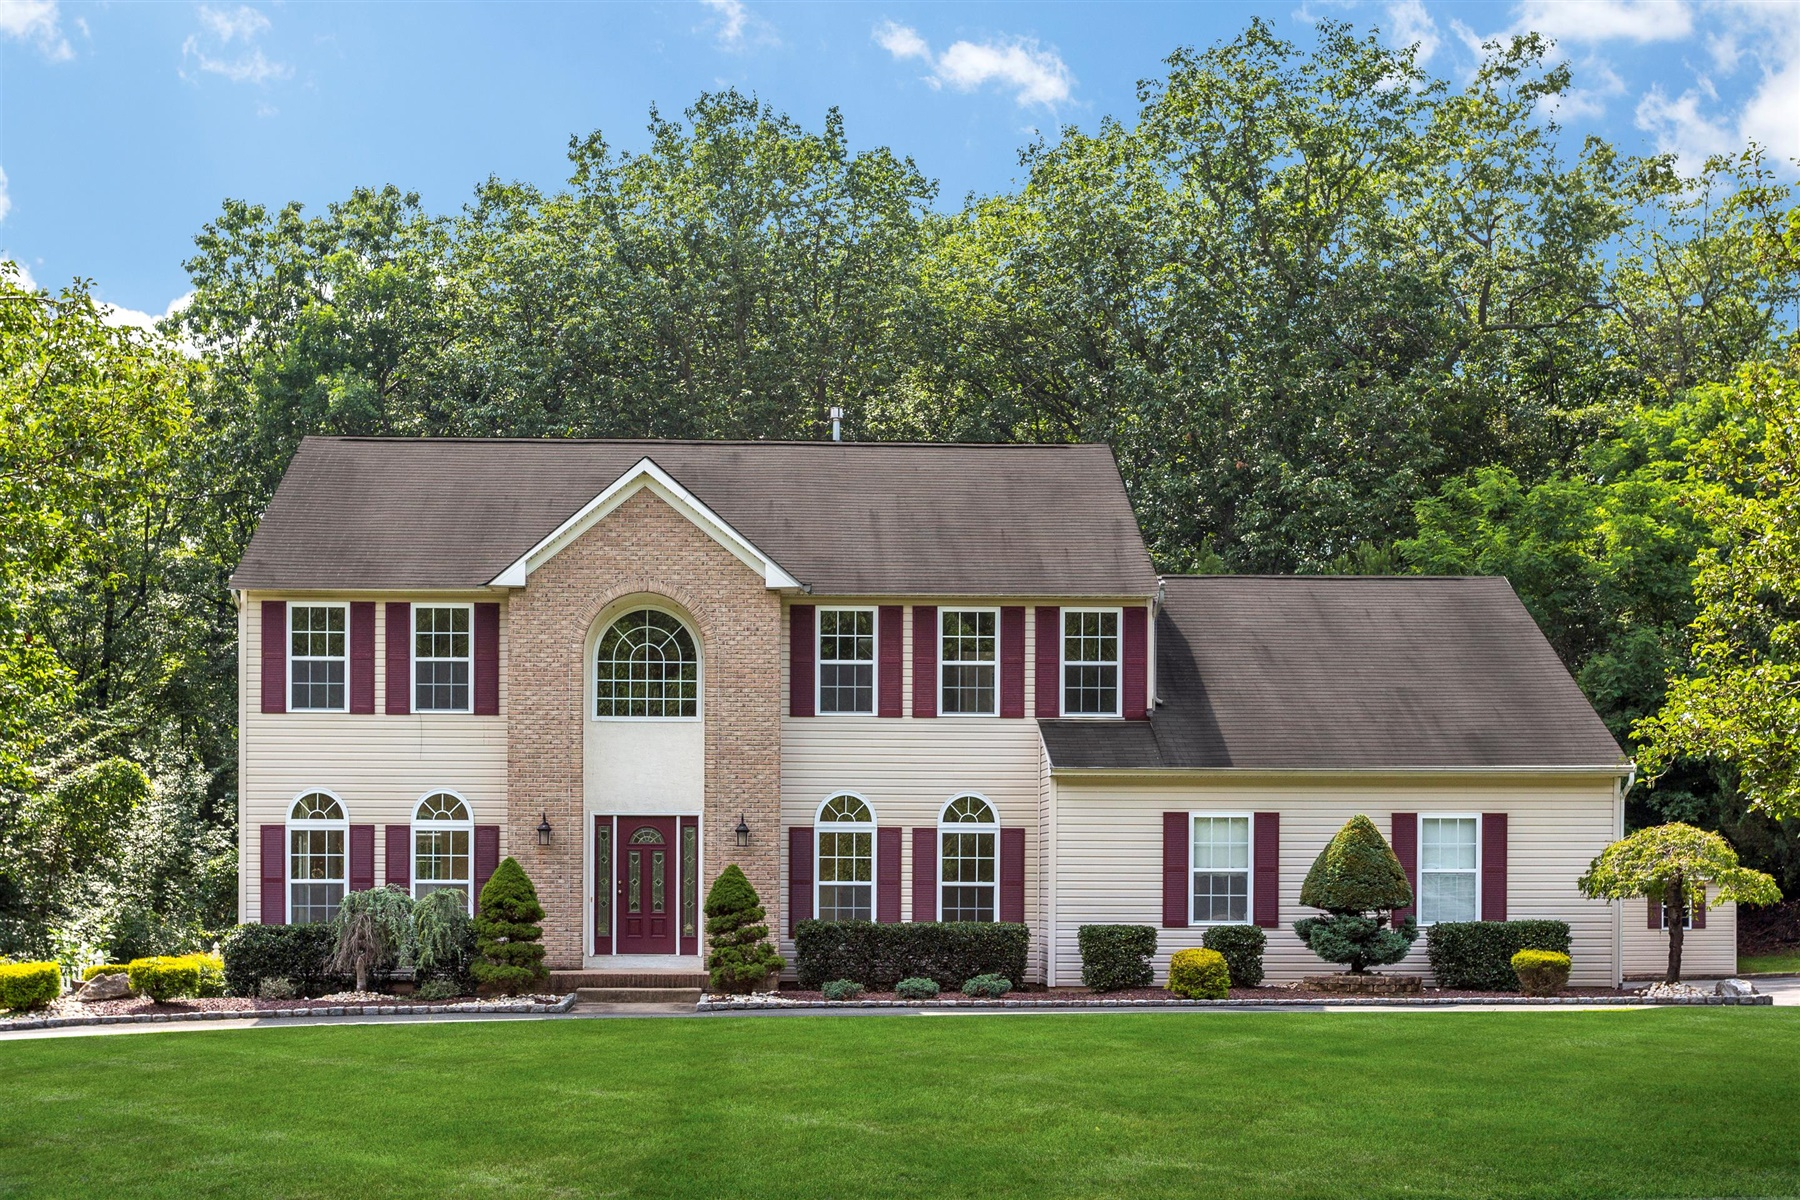 Single Family Homes for Active at 25 Plum Ridge Drive 25 Plum Ridge Road New Egypt, New Jersey 08533 United States